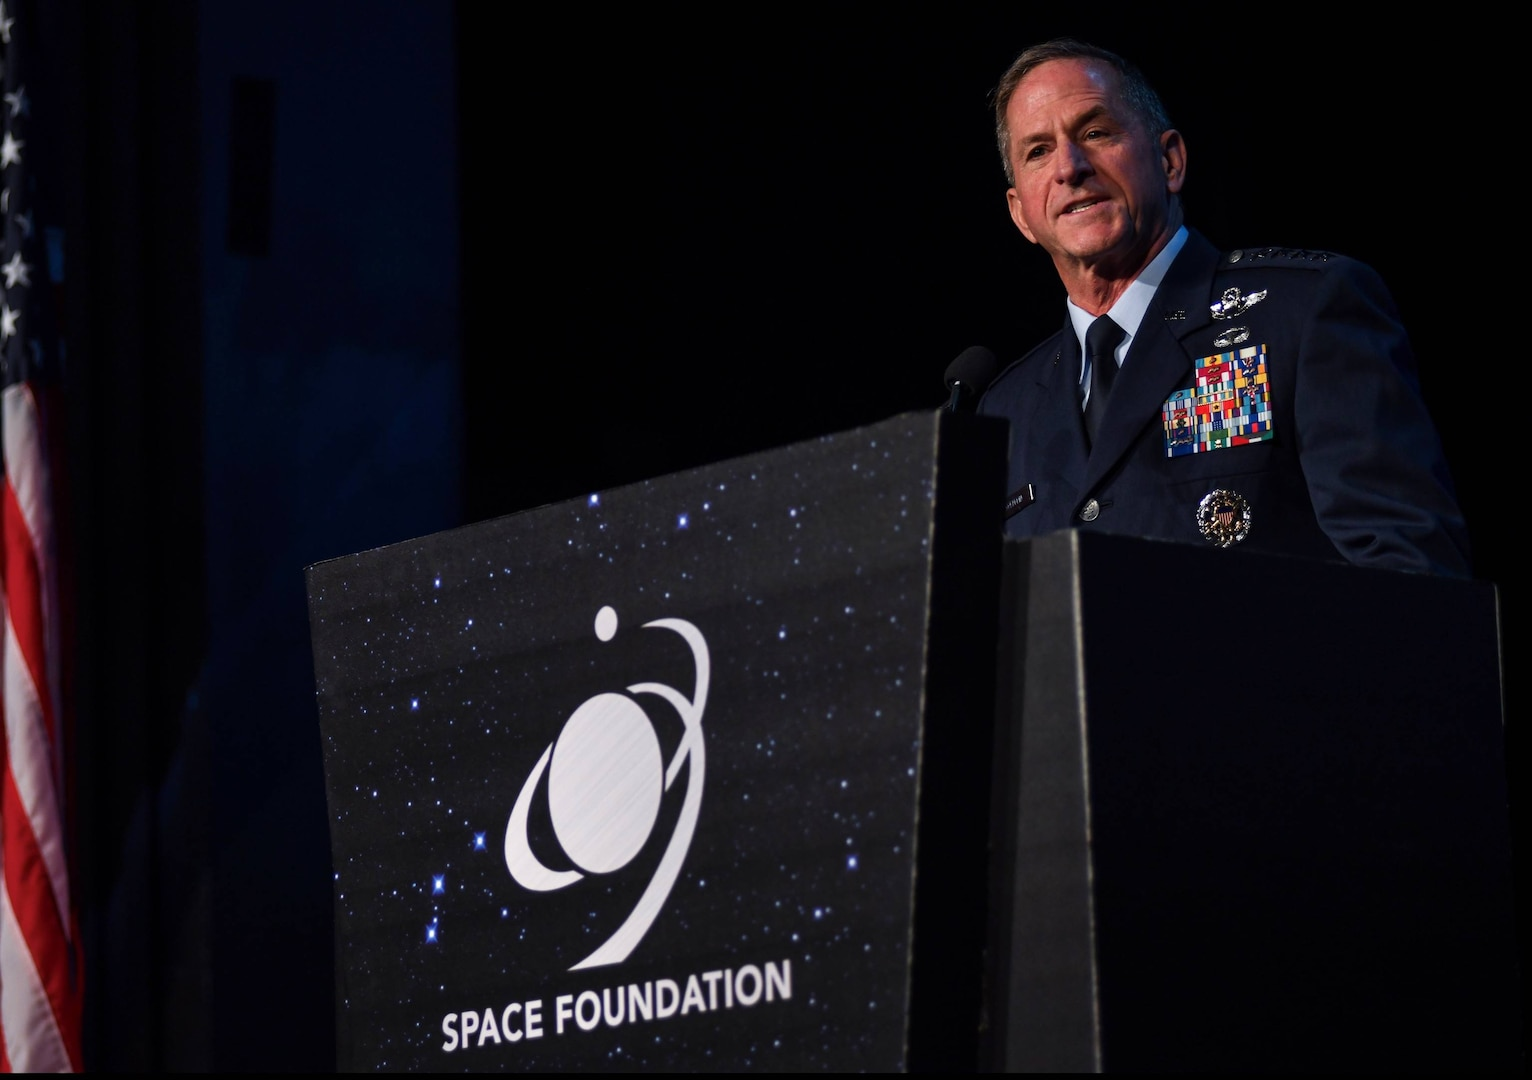 """Air Force Chief of Staff Gen. David L. Goldfein emphasized the importance of allies and partners during a speech April 9, 2019, at the 35th Space Symposium in Colorado Springs, Colo. """"We prefer the power of collaboration over coercion"""" to maintain space dominance, Goldfein said. (U.S. Air Force photo by Airman 1st Class Michael Mathews)"""